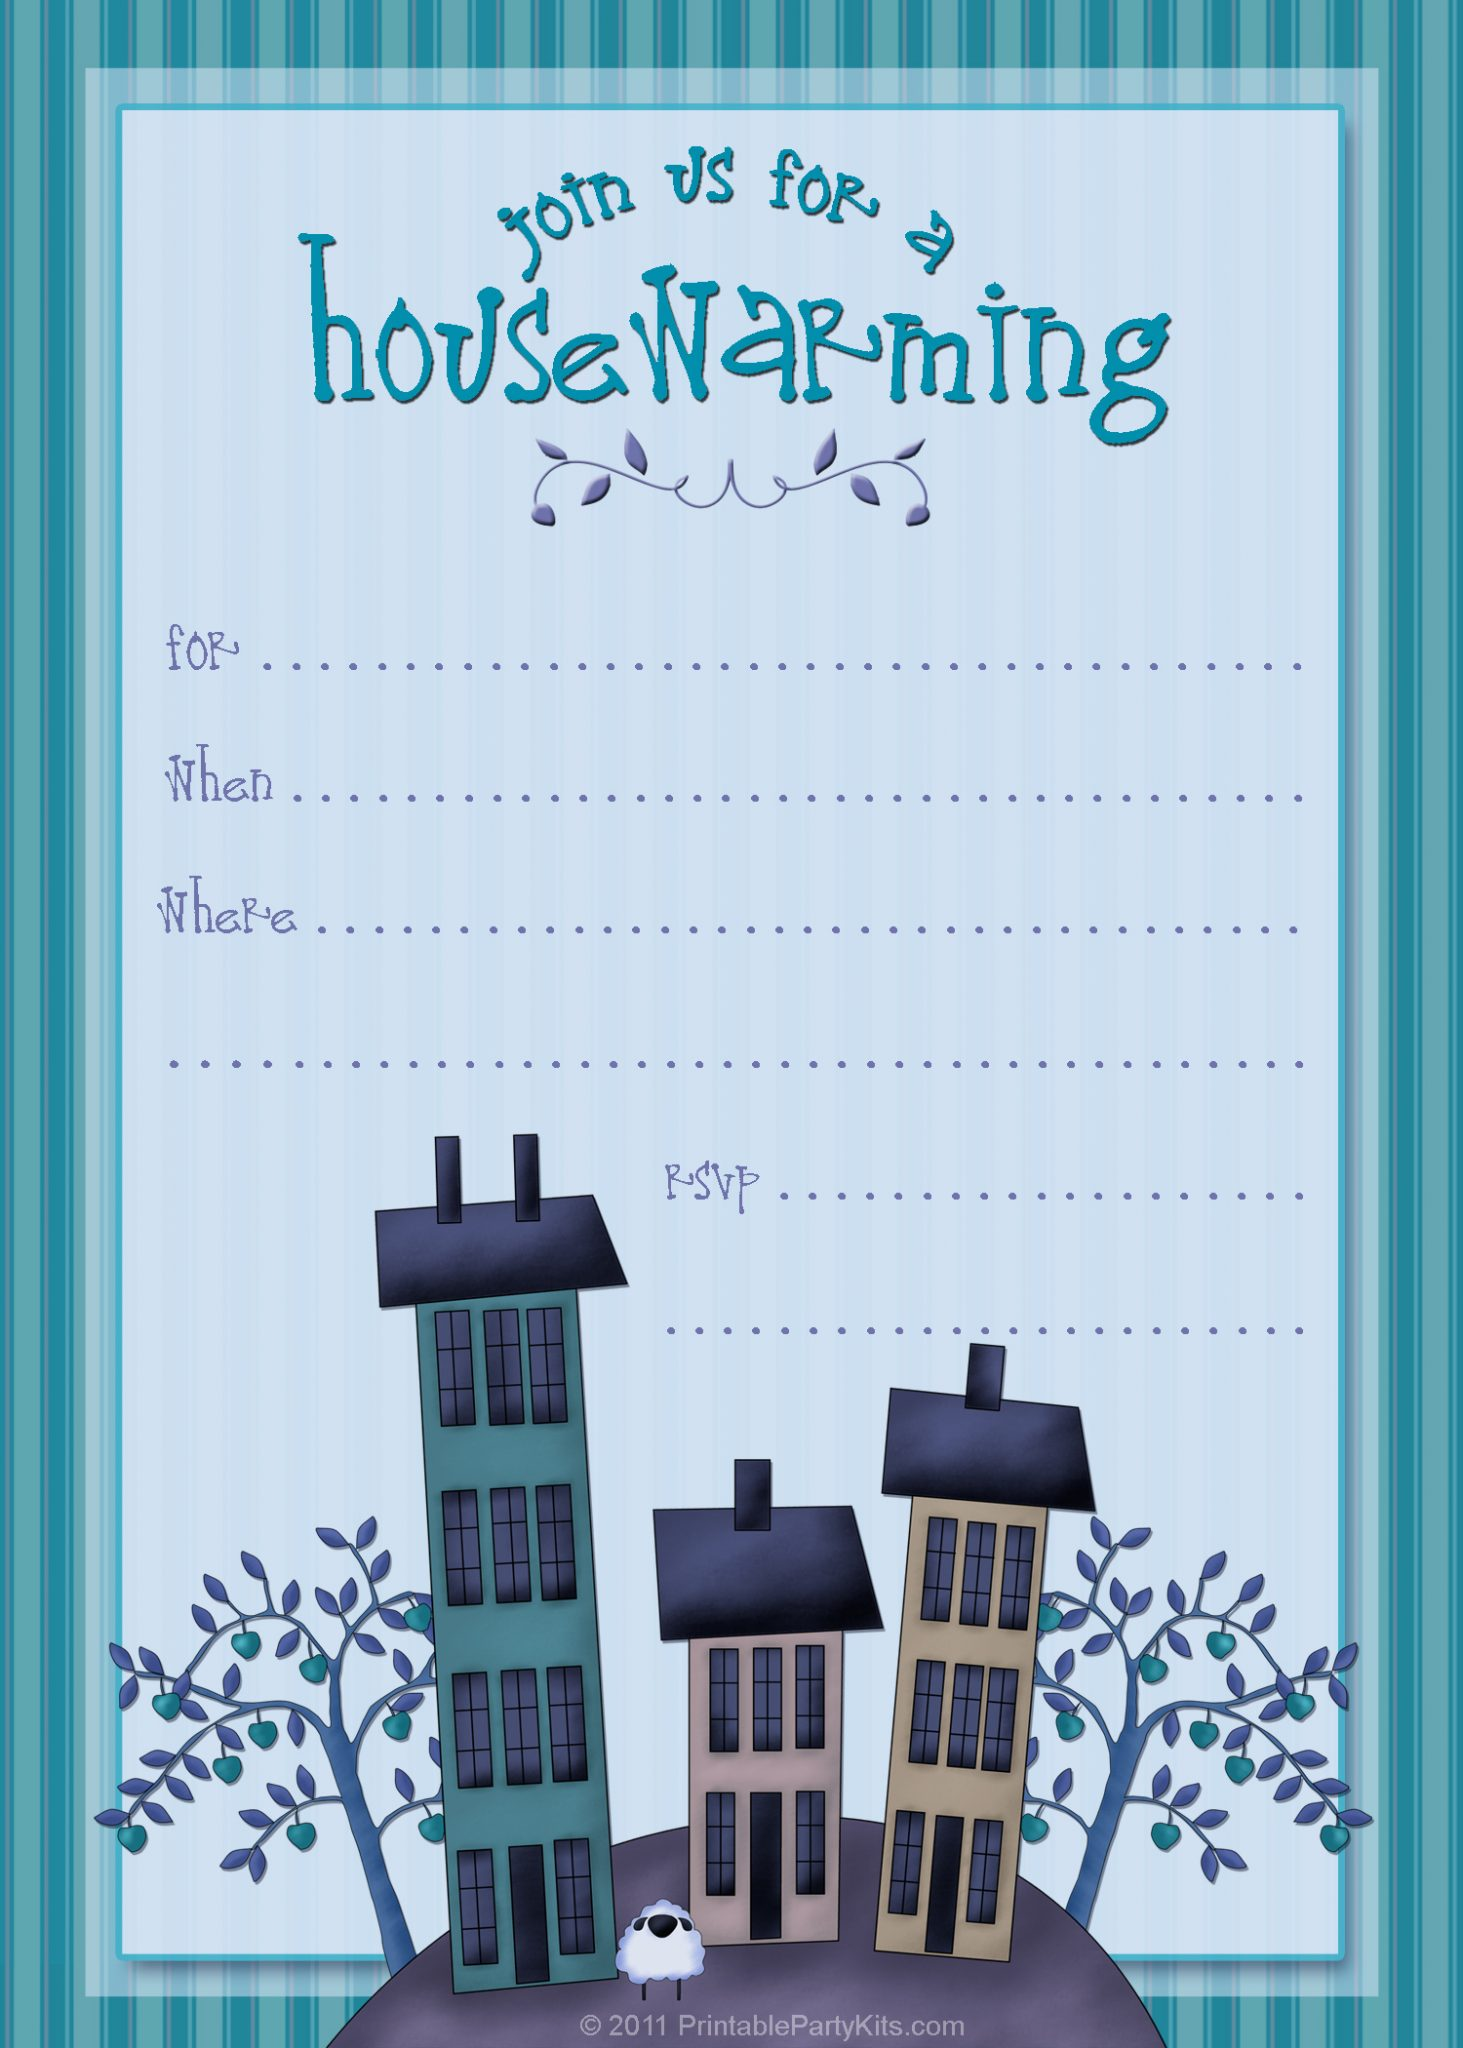 Selective image in printable housewarming invitations